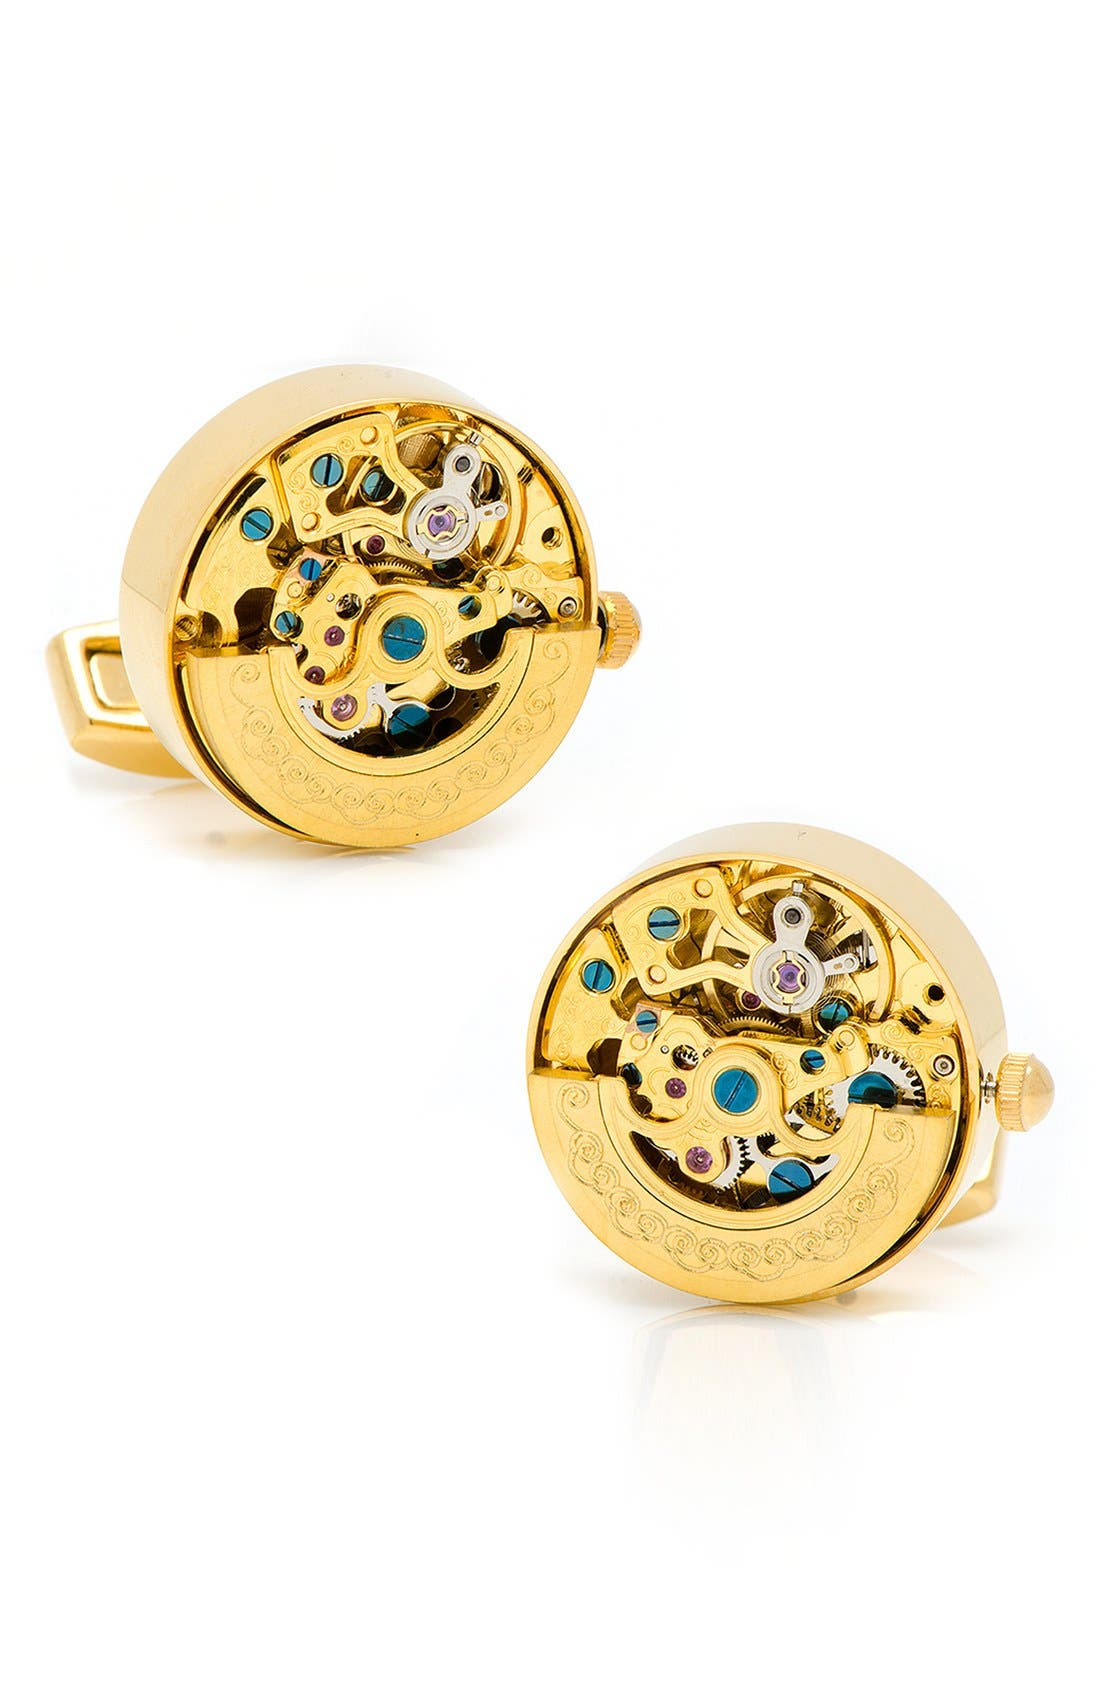 Penny Black 40 'Kinetic Watch' Cuff Links